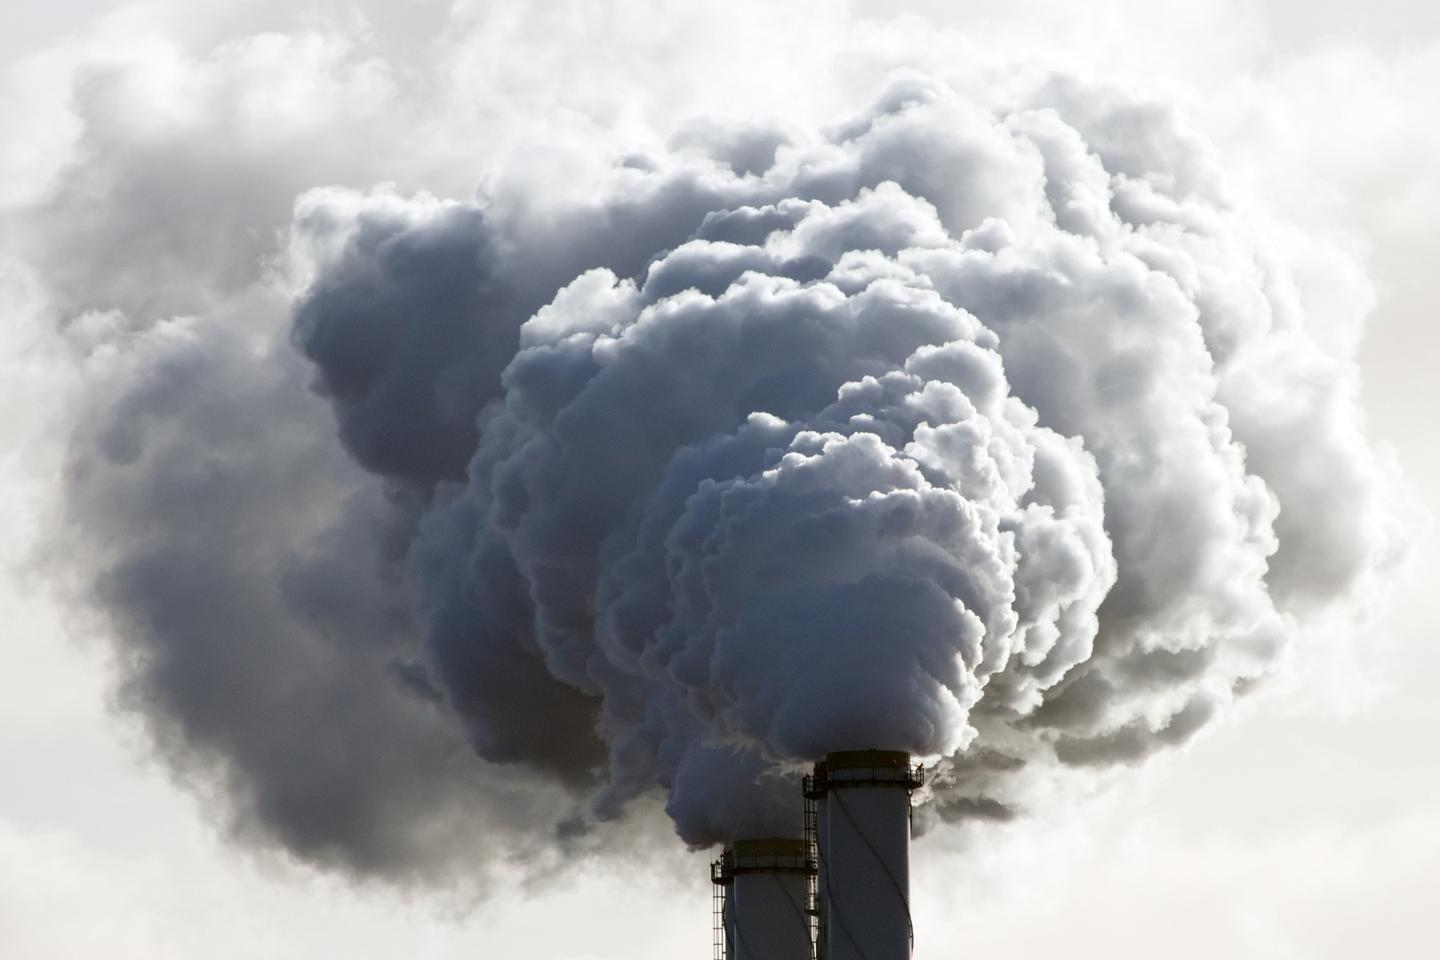 Greenhouse gas emissions are on track to far exceed safe levels by 2030